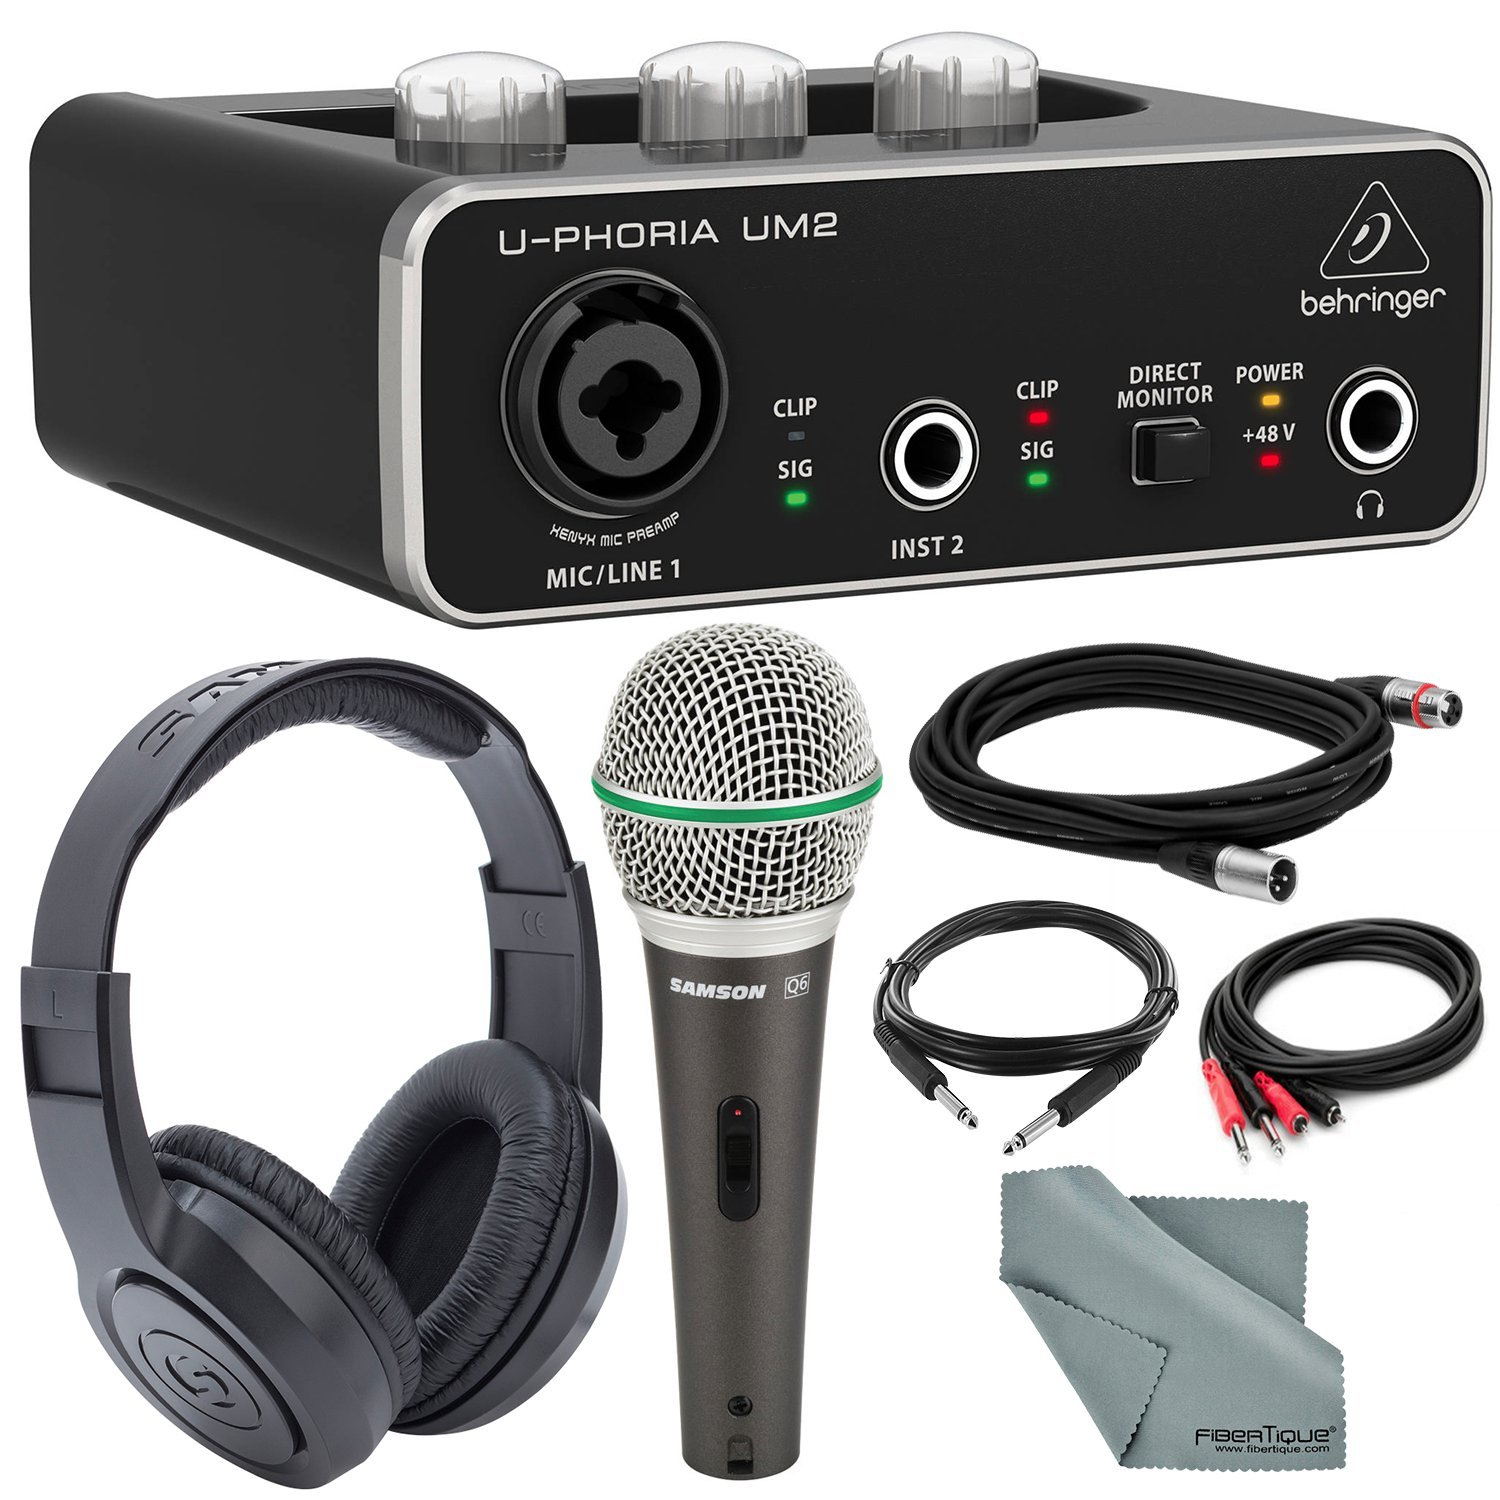 Behringer U-PHORIA UM2 2x2 USB Audio Interface and Deluxe Bundle w/Samson Q6 Mic + Headphones + Xpix 1/4'' TRS Cable + 2RCA Male Cable + Fibertique by Photo Savings